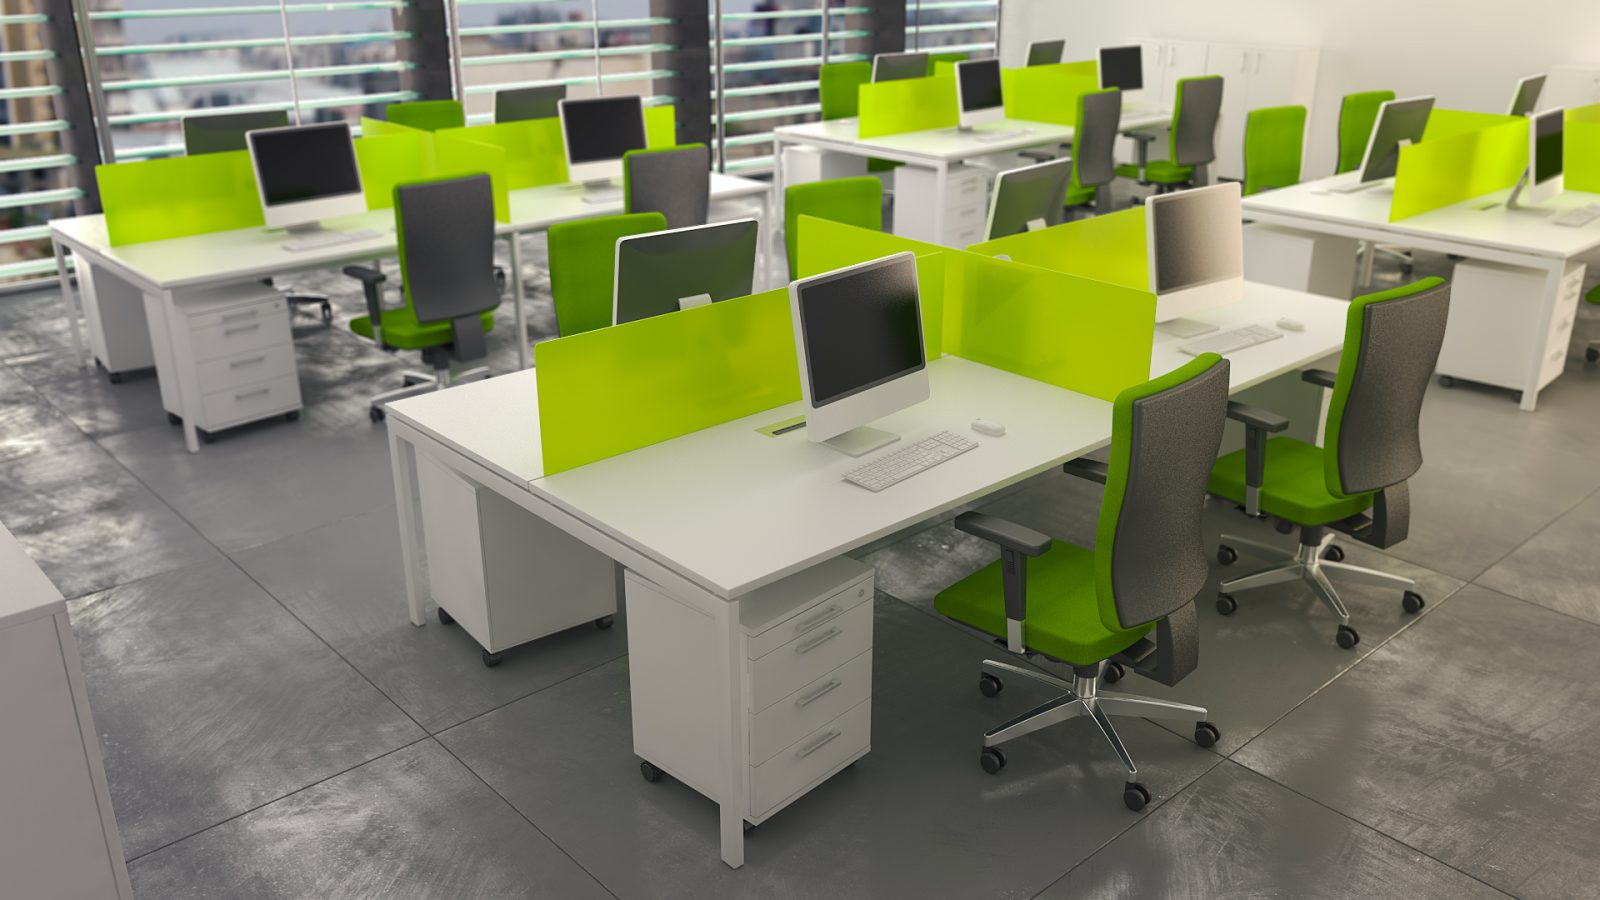 Sharedesk erbd 280 pe 160 ambient 2